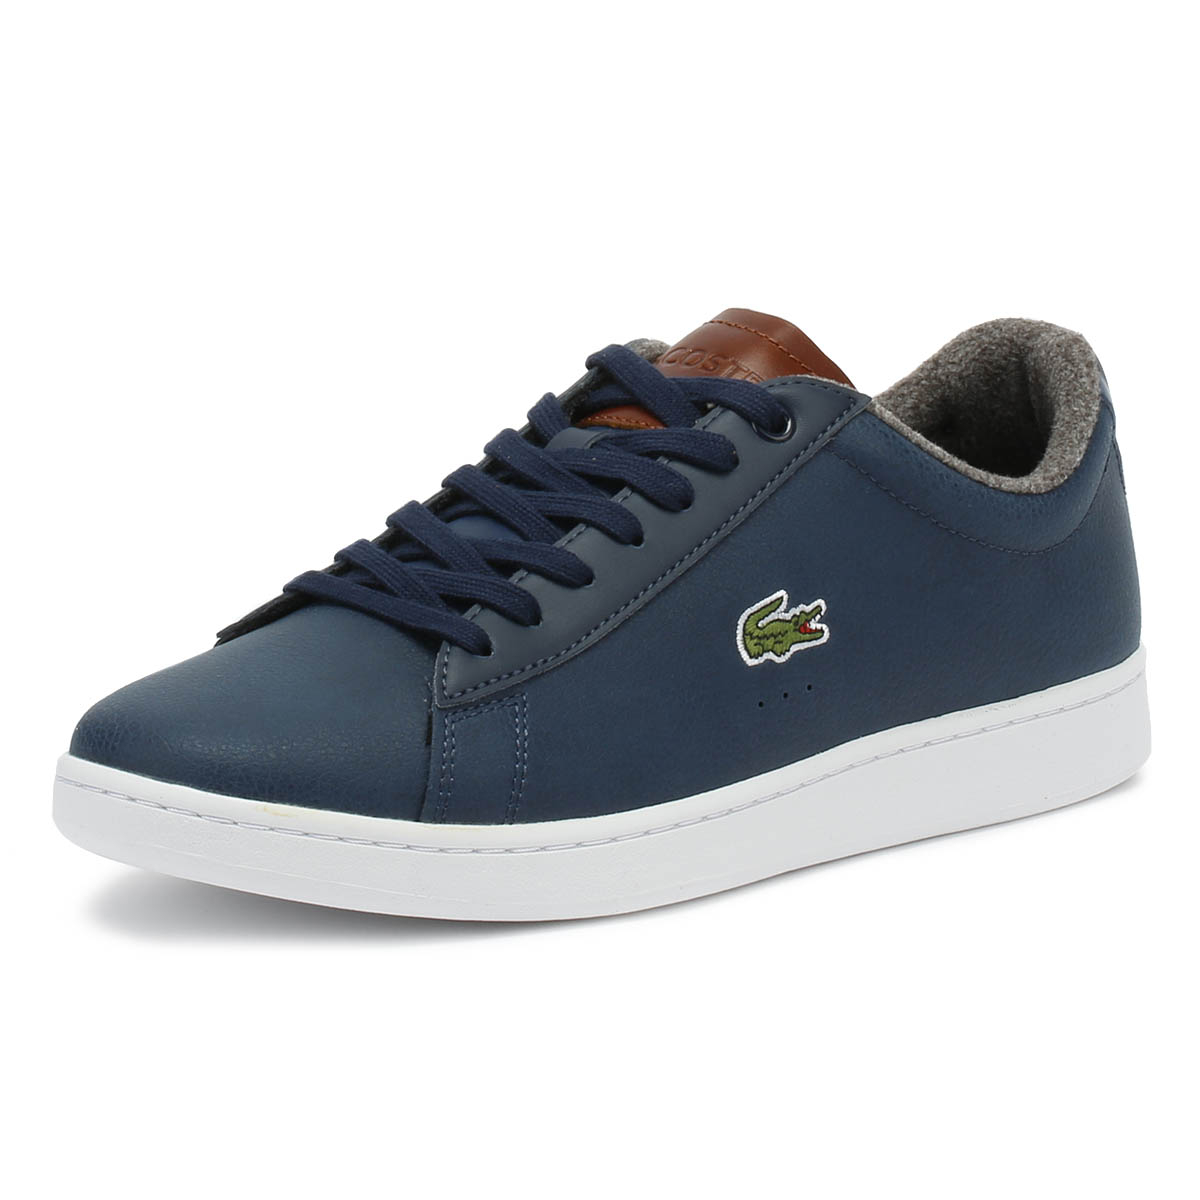 3befc0883 Details about Lacoste Mens Trainers Carnaby EVO 318 2 Navy   Brown Sport  Casual Shoes